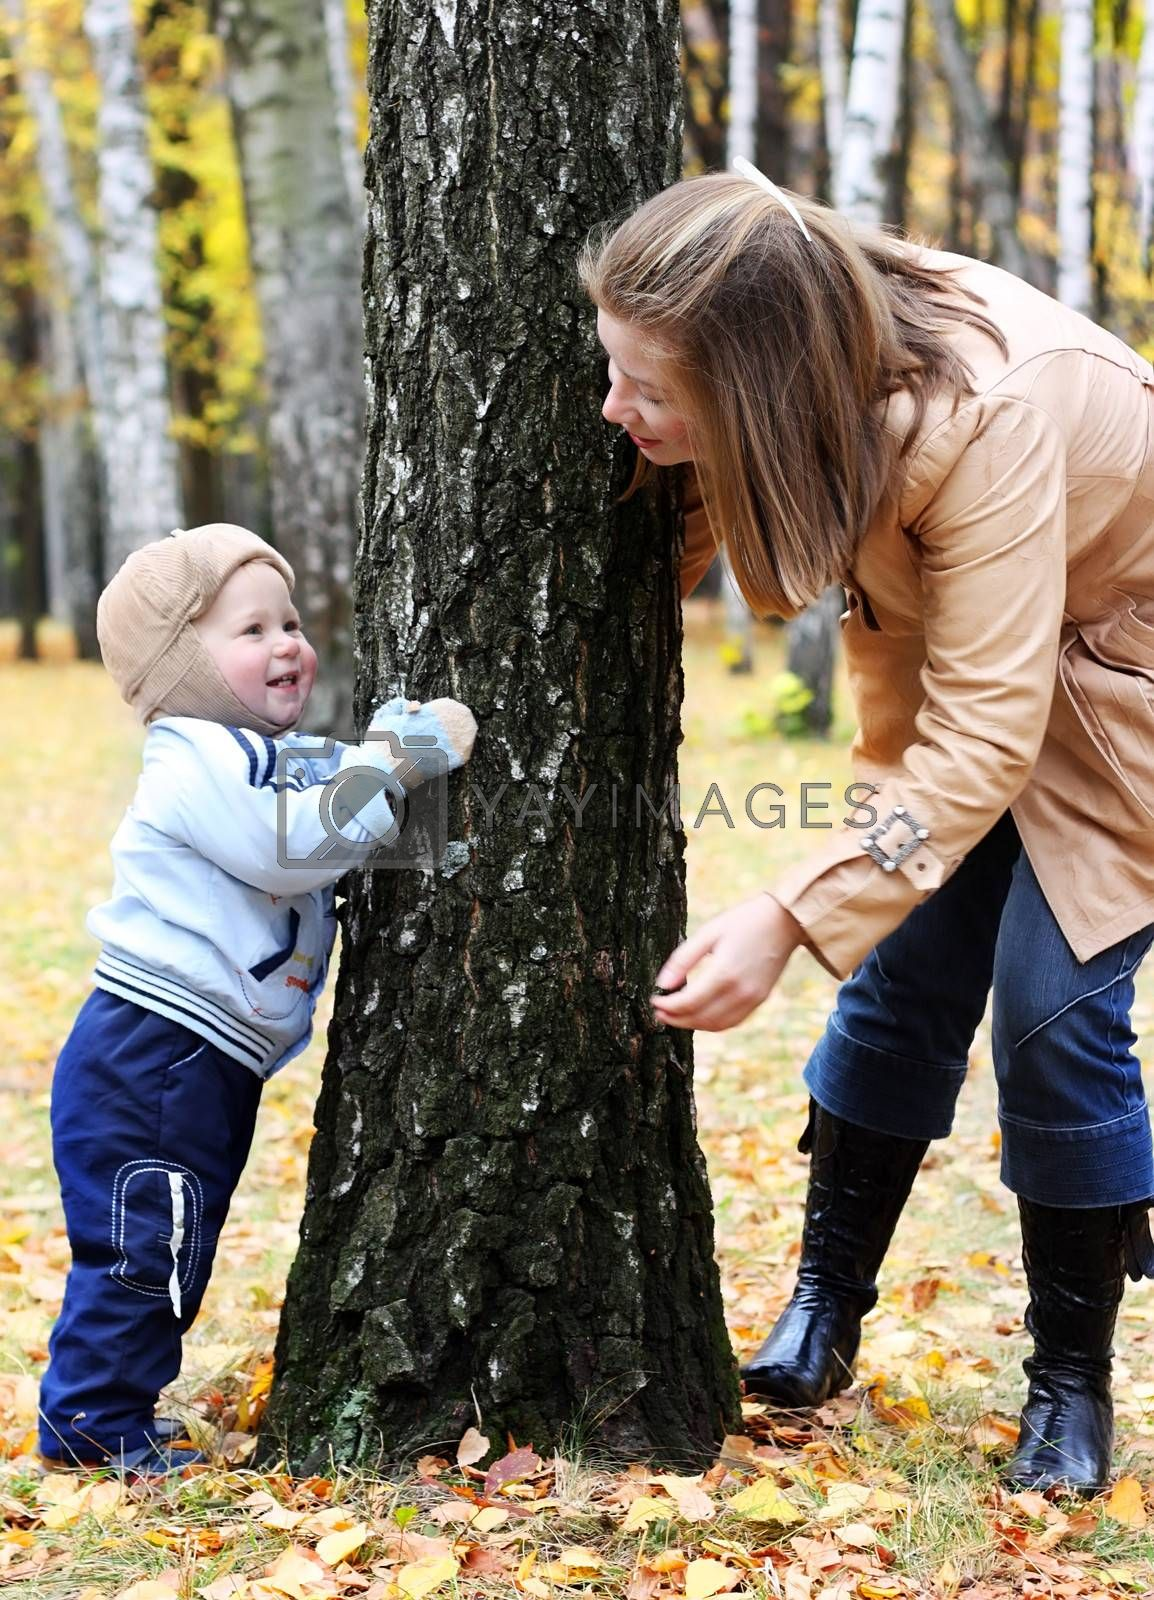 Mother and son play hide-and-seek in a park